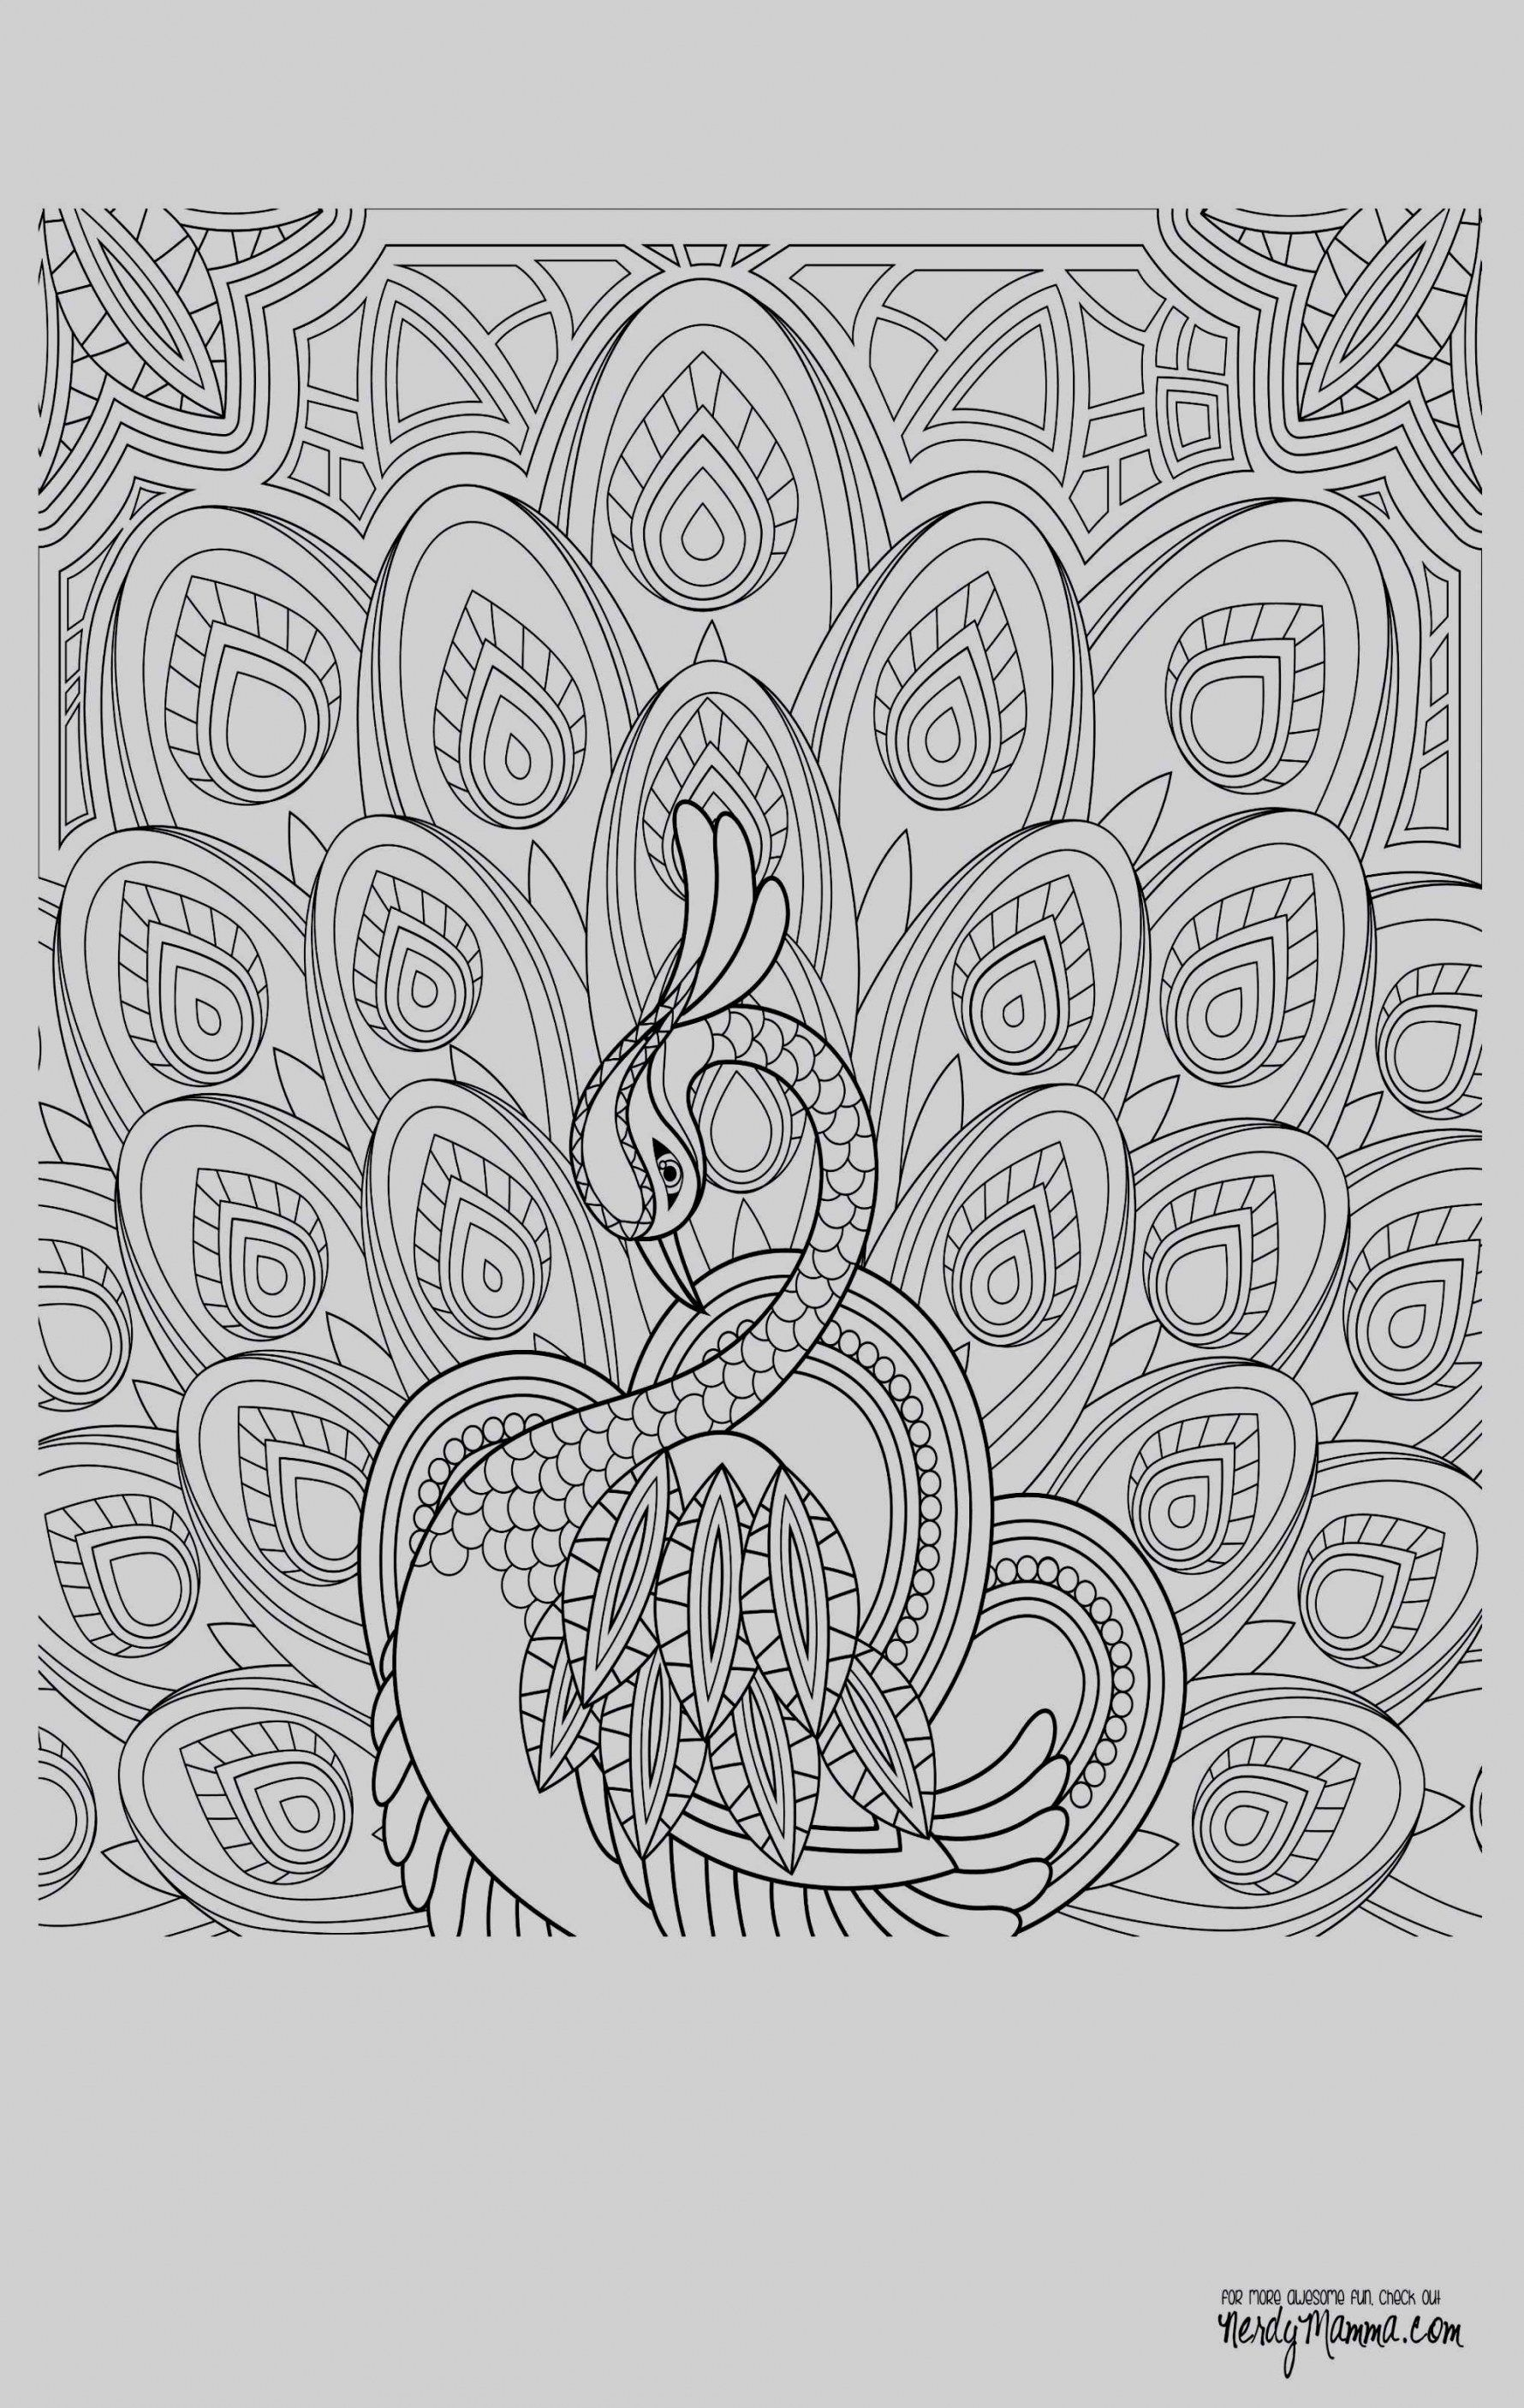 Fun Coloring Pages For Girls Unique Drawings Girls Girls Coloring Sheets Kanta Best In 2020 Detailed Coloring Pages Mandala Coloring Pages Animal Coloring Pages